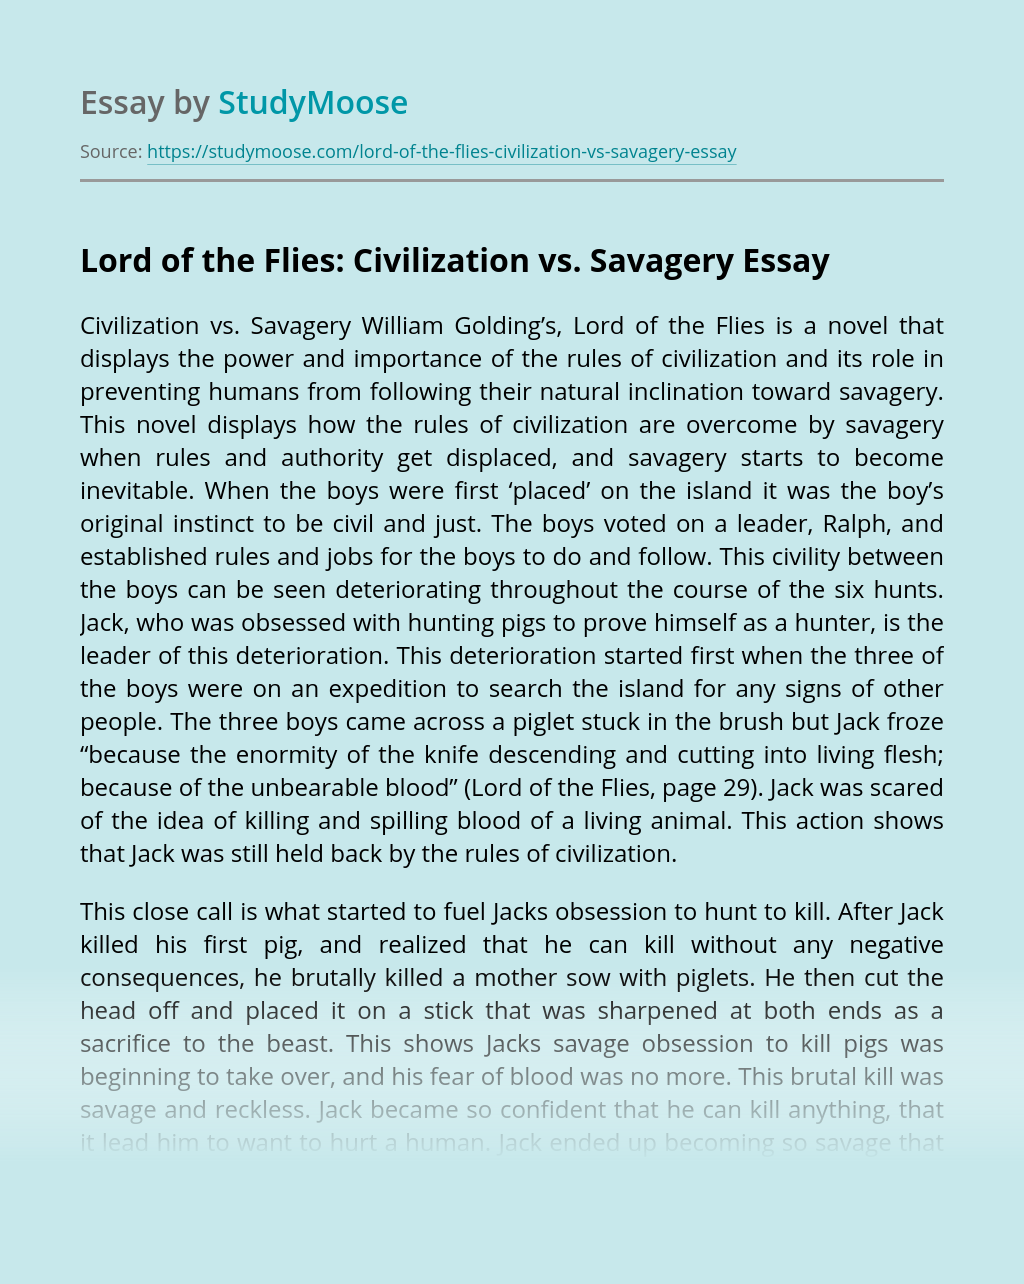 Lord of the Flies: Civilization vs. Savagery